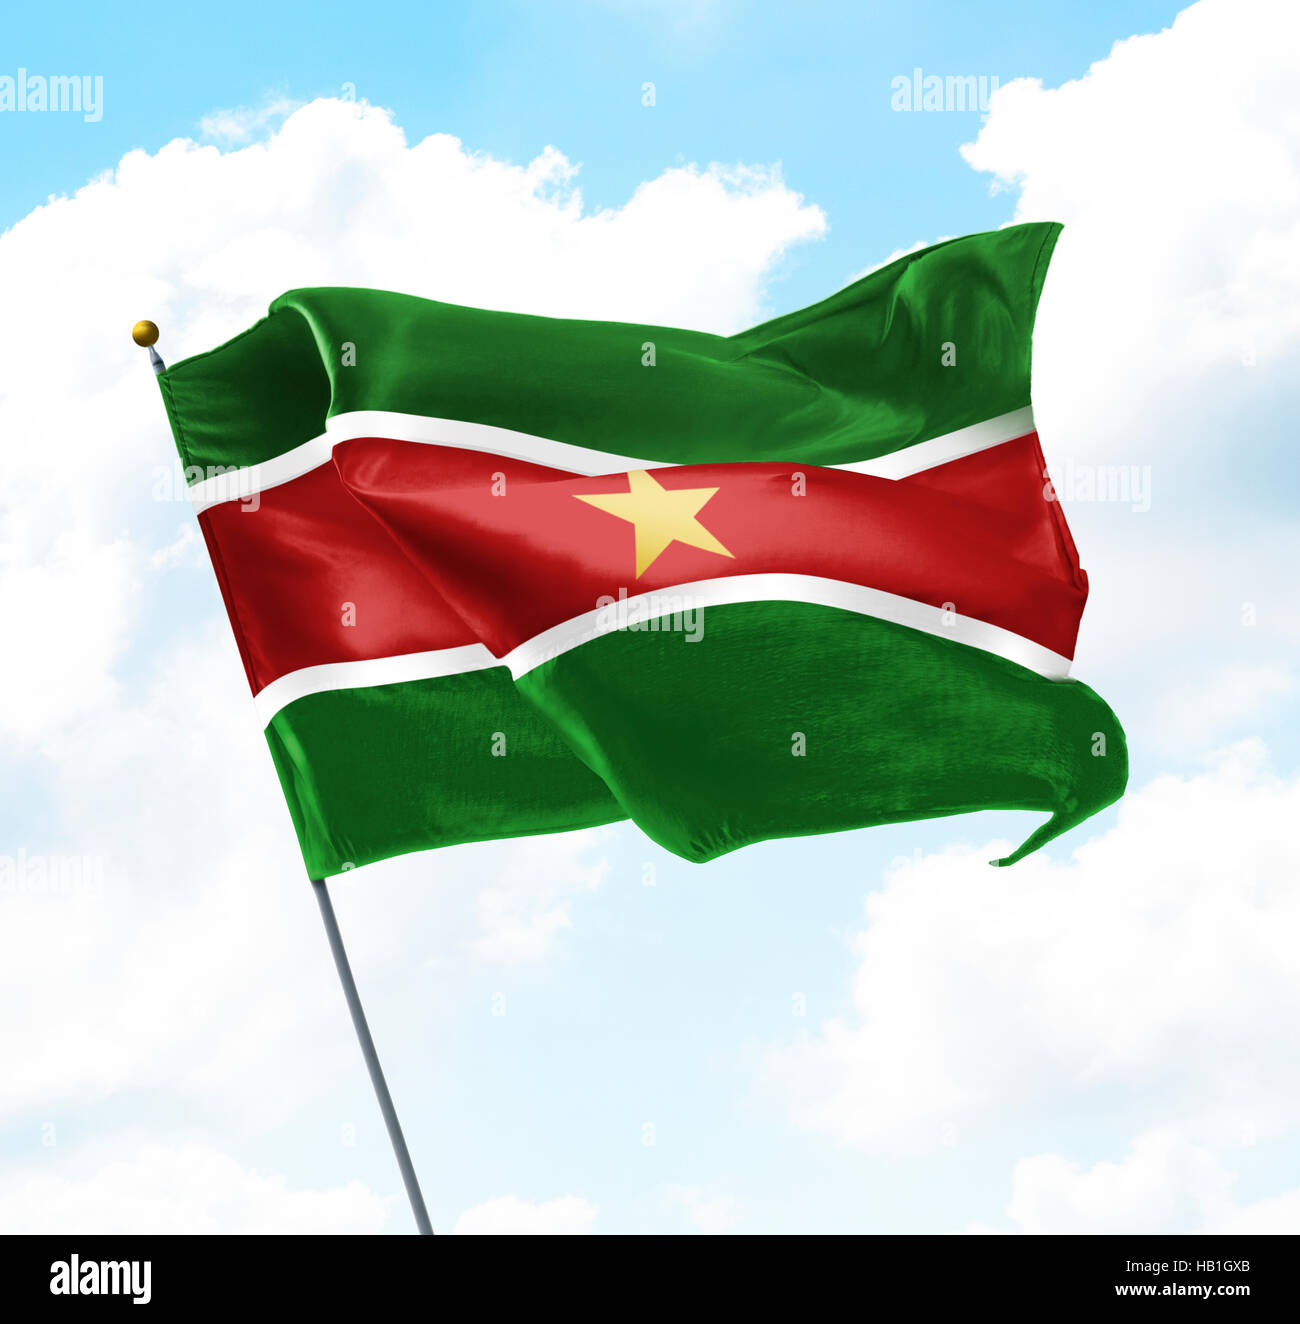 Flag of Suriname Raised Up in The Sky - Stock Image